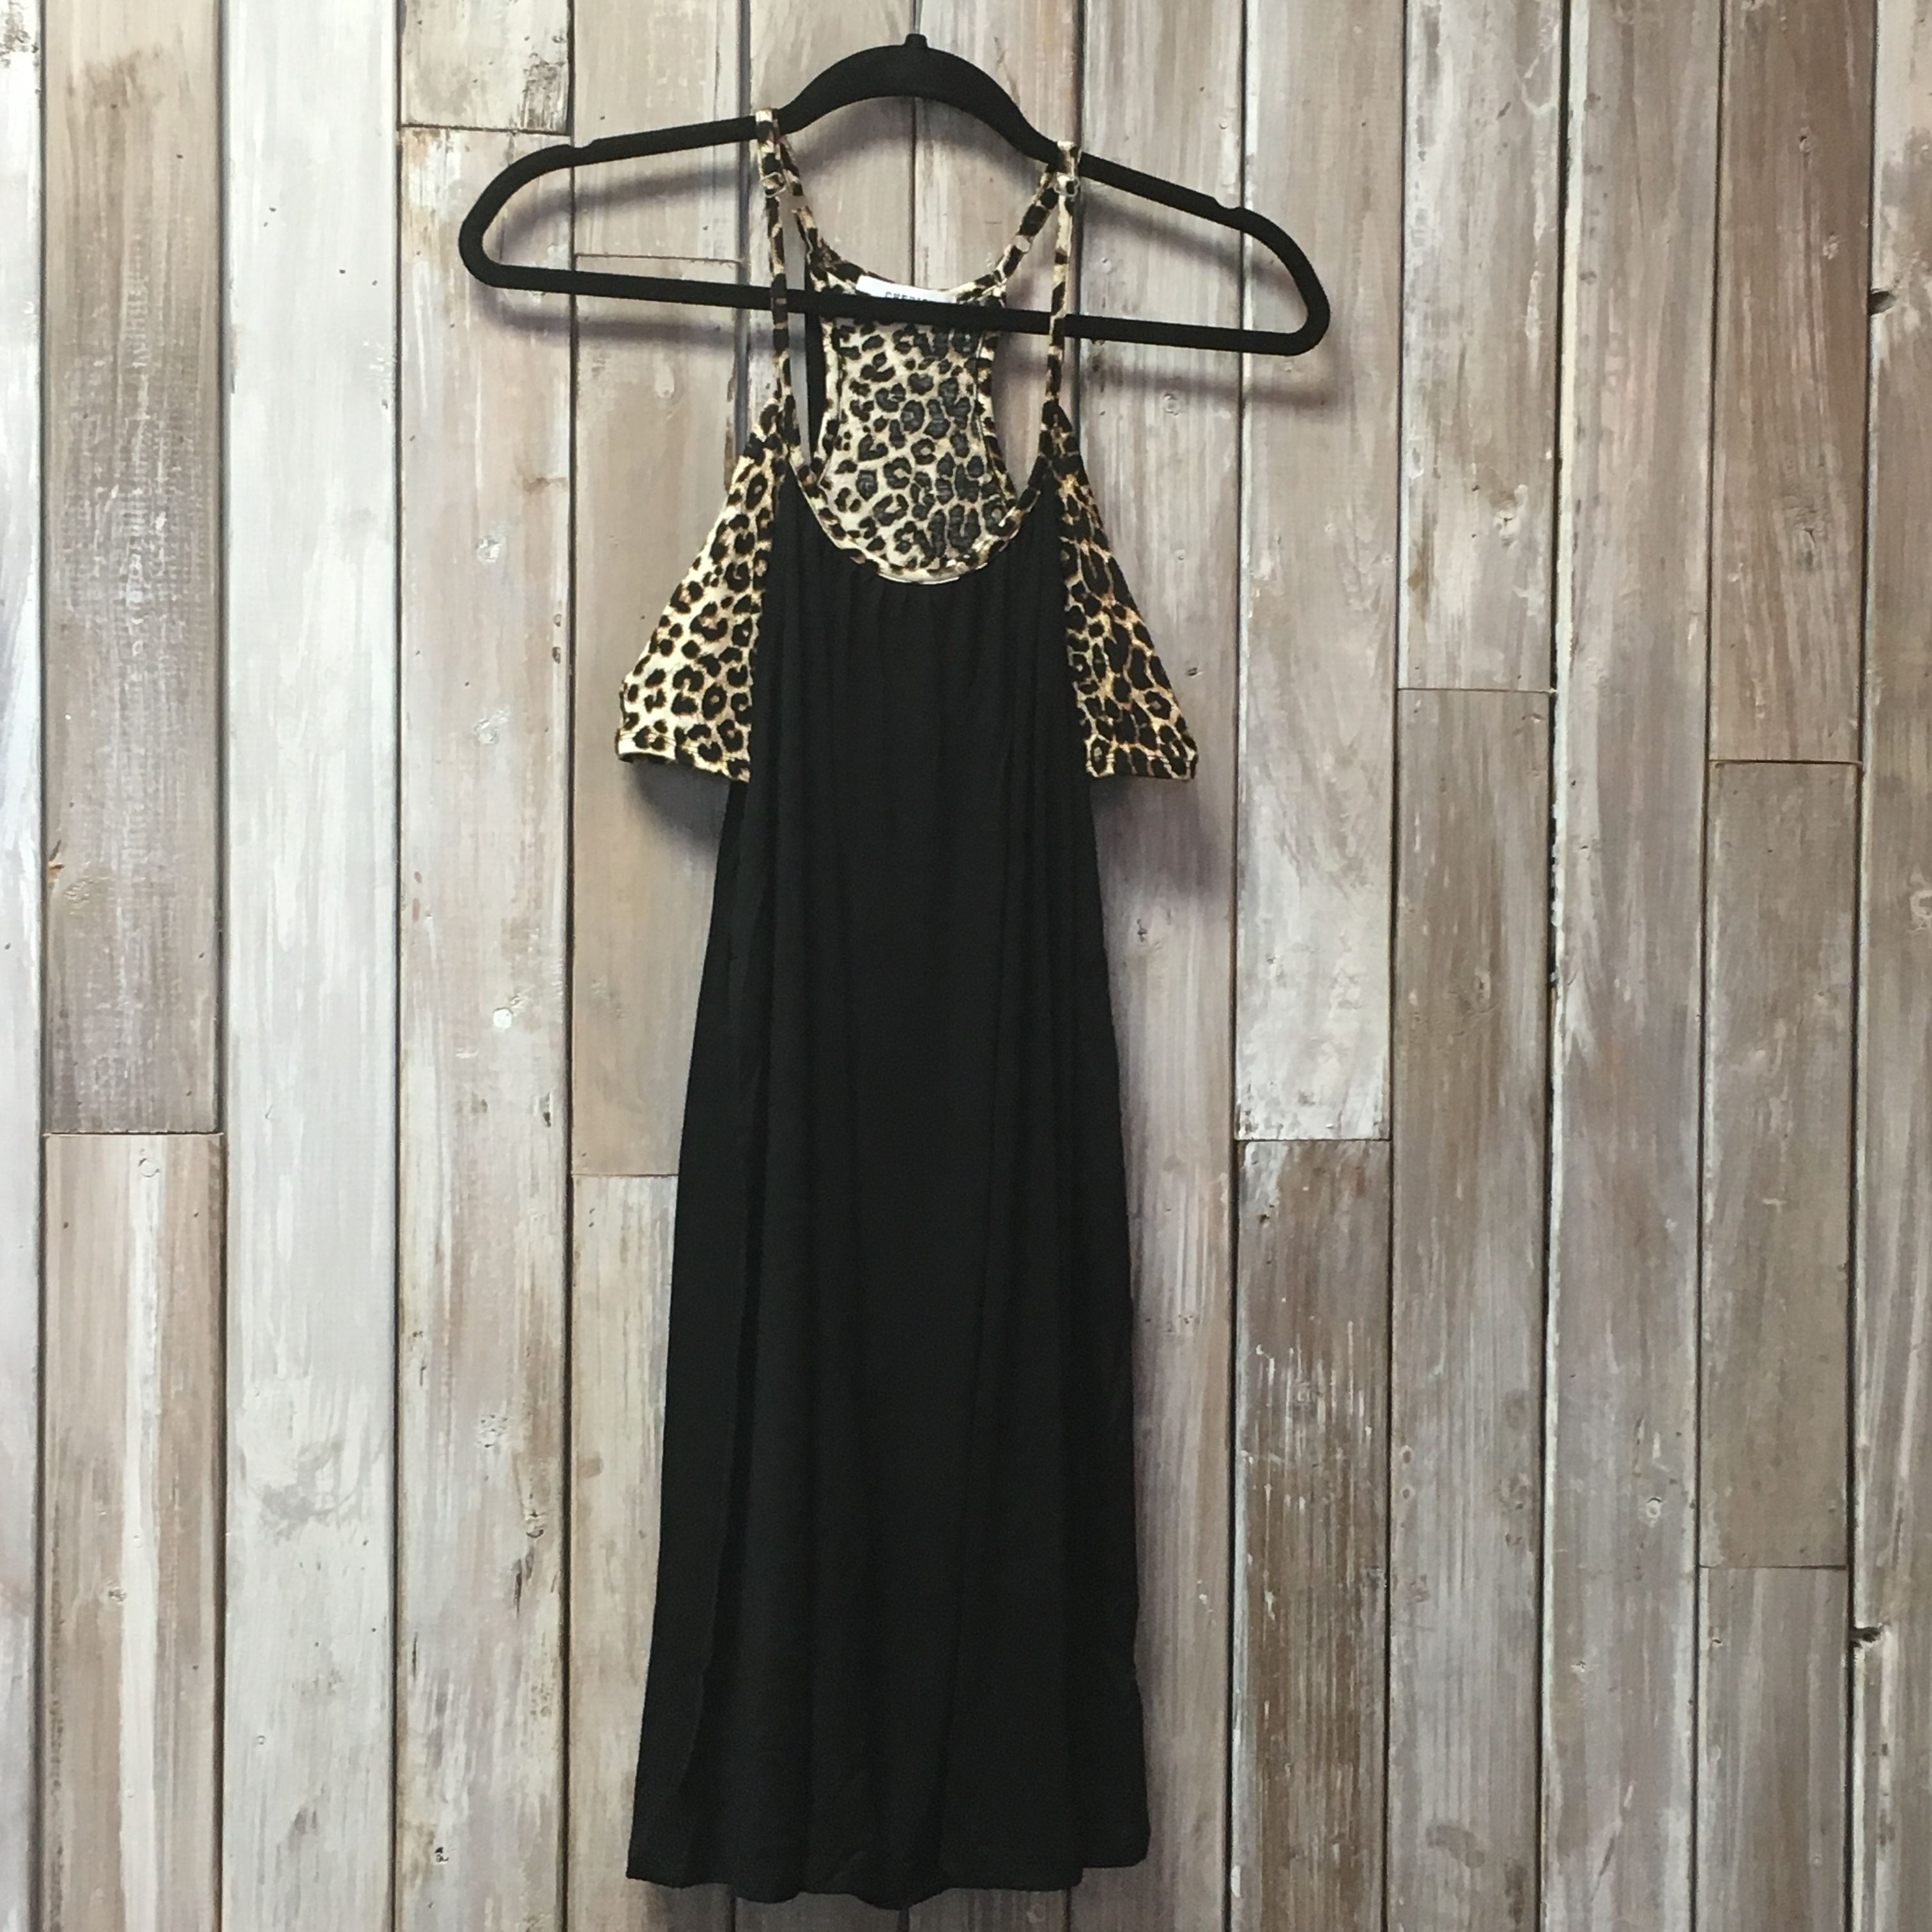 Small (0-2), Medium (4-6), Large (8-10) | Shop this product here: http://spreesy.com/hangitupboutique/447 | Shop all of our products at http://spreesy.com/hangitupboutique    | Pinterest selling powered by Spreesy.com